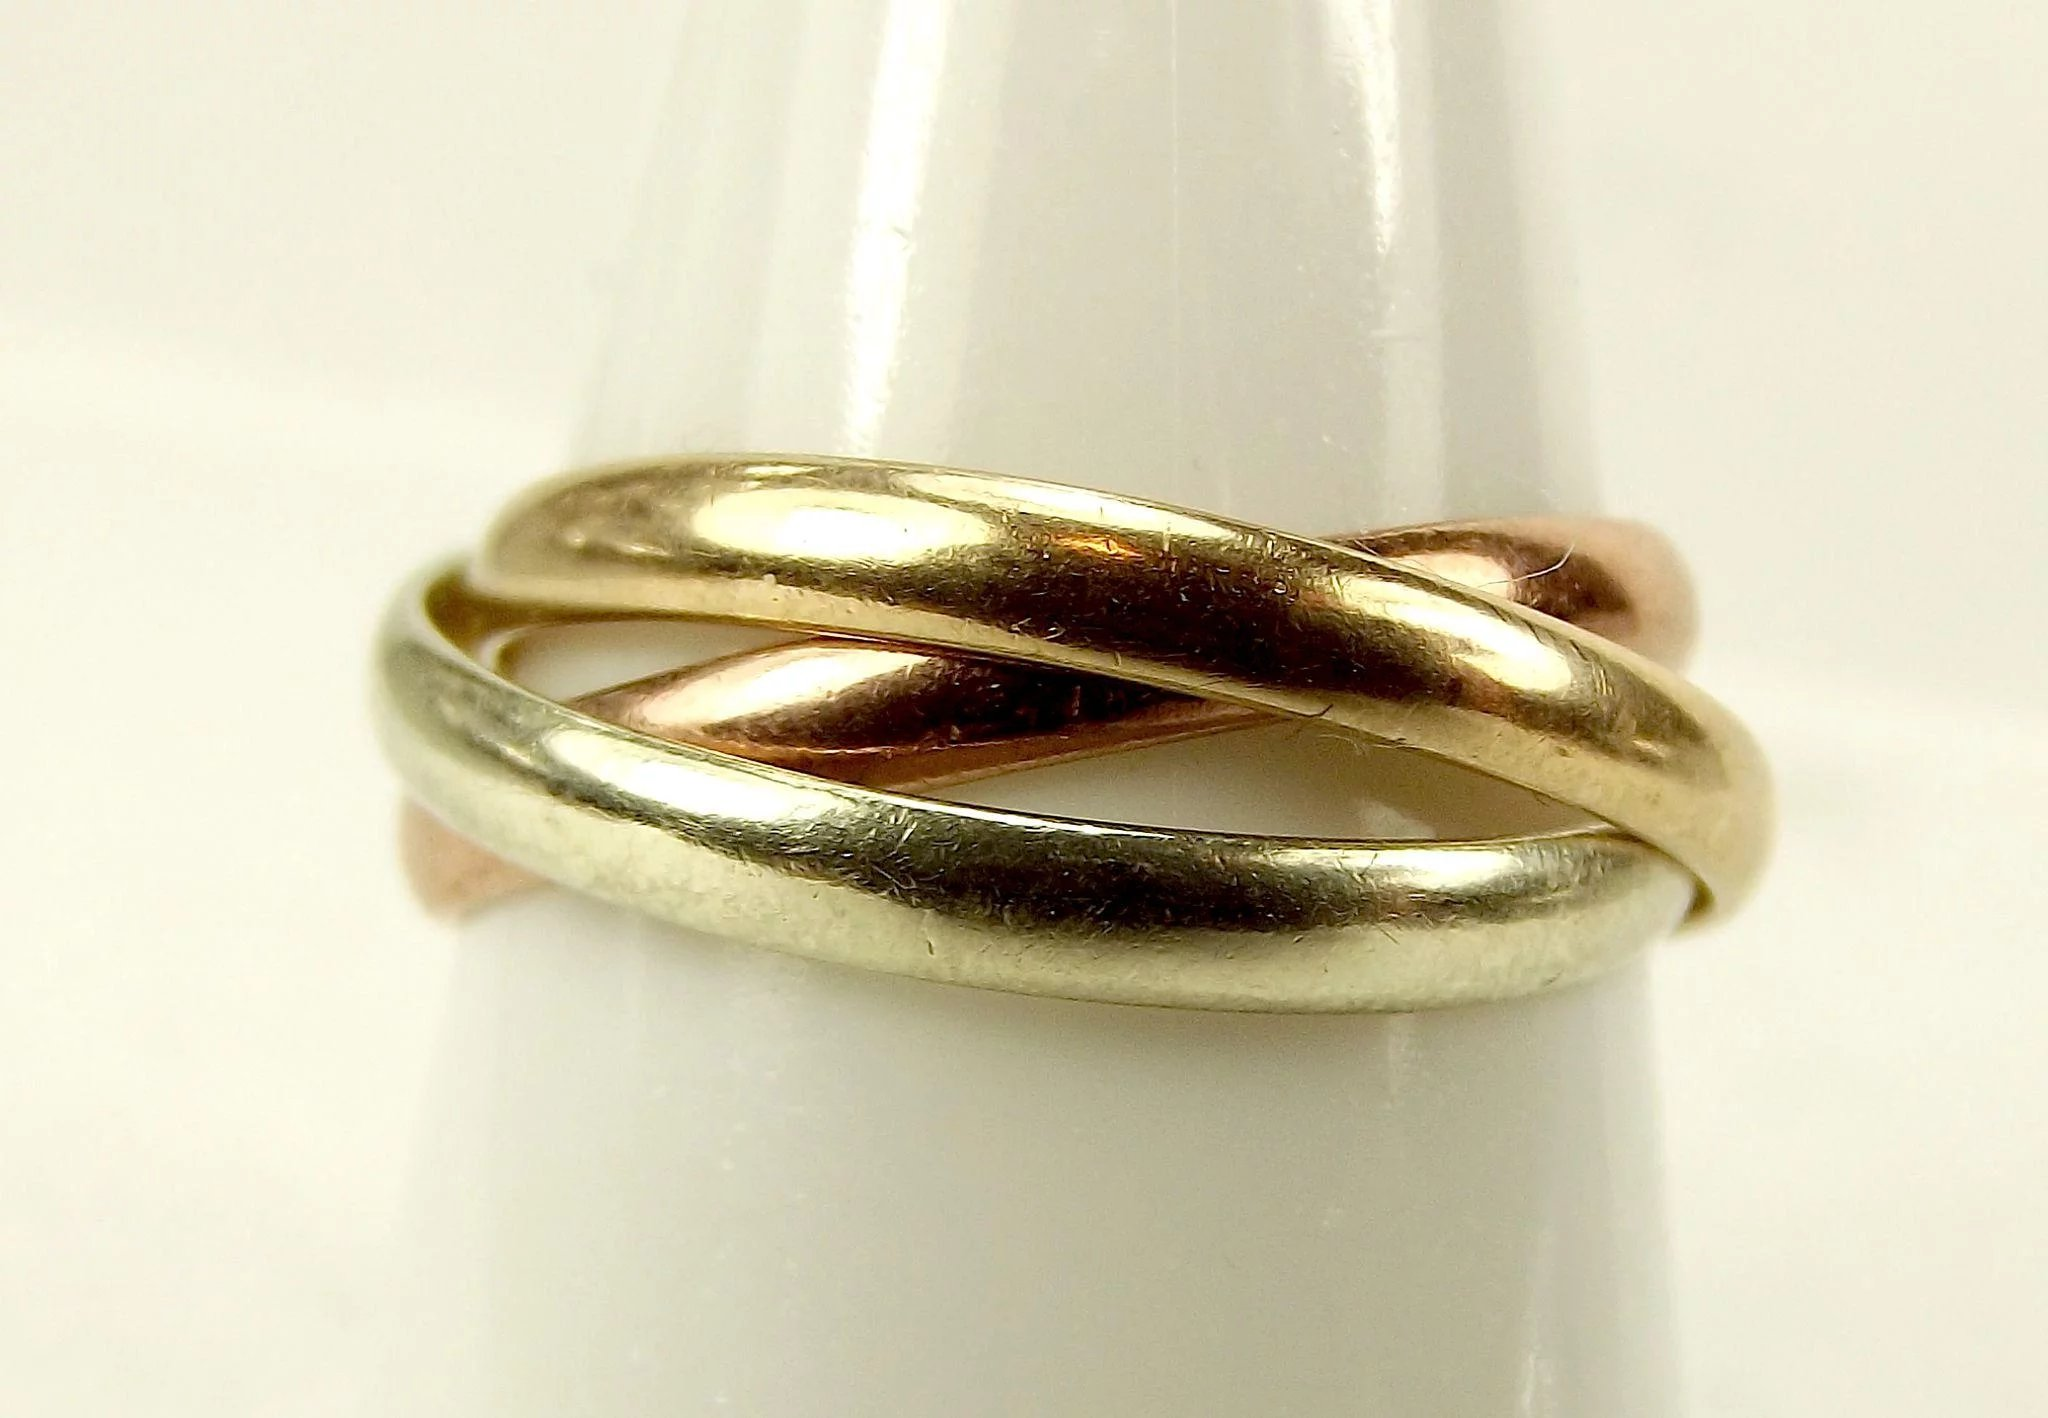 Vintage 3 9ct Gold Russian Wedding Rings Rose Yellow White Hallmark 1982 Click To Expand